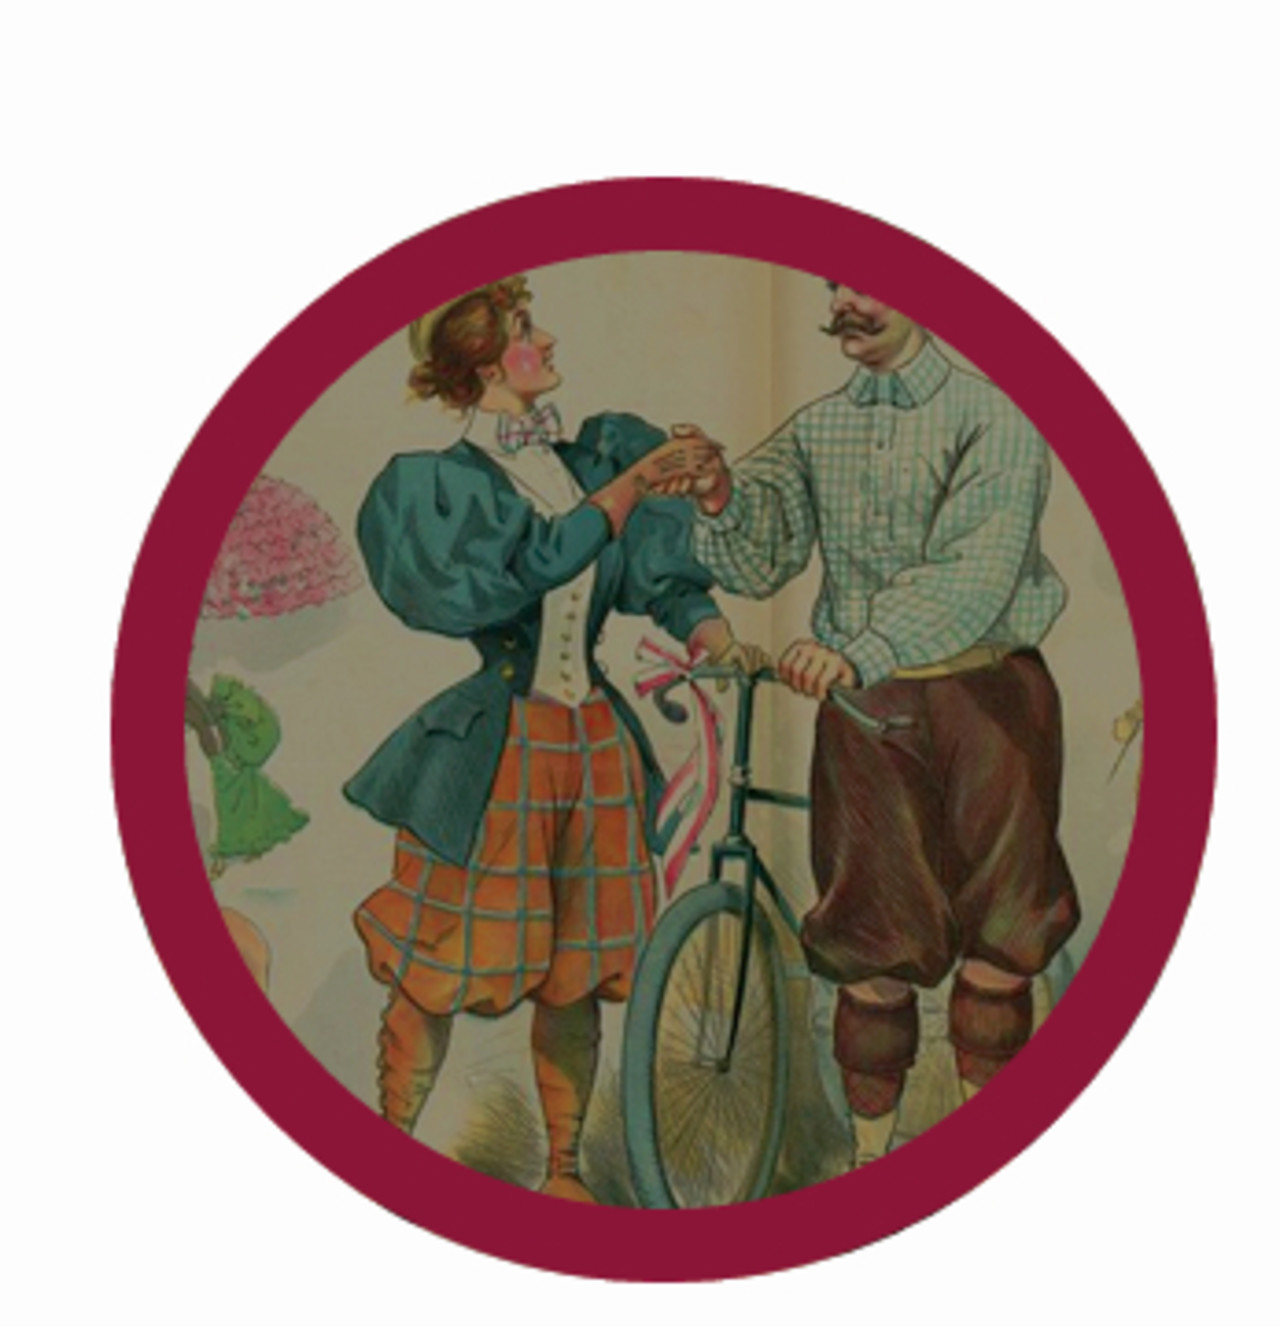 "Puck magazine in the 1890s depicted the female cyclists ""love life"" in many of their illustrations, often poking fun at it."